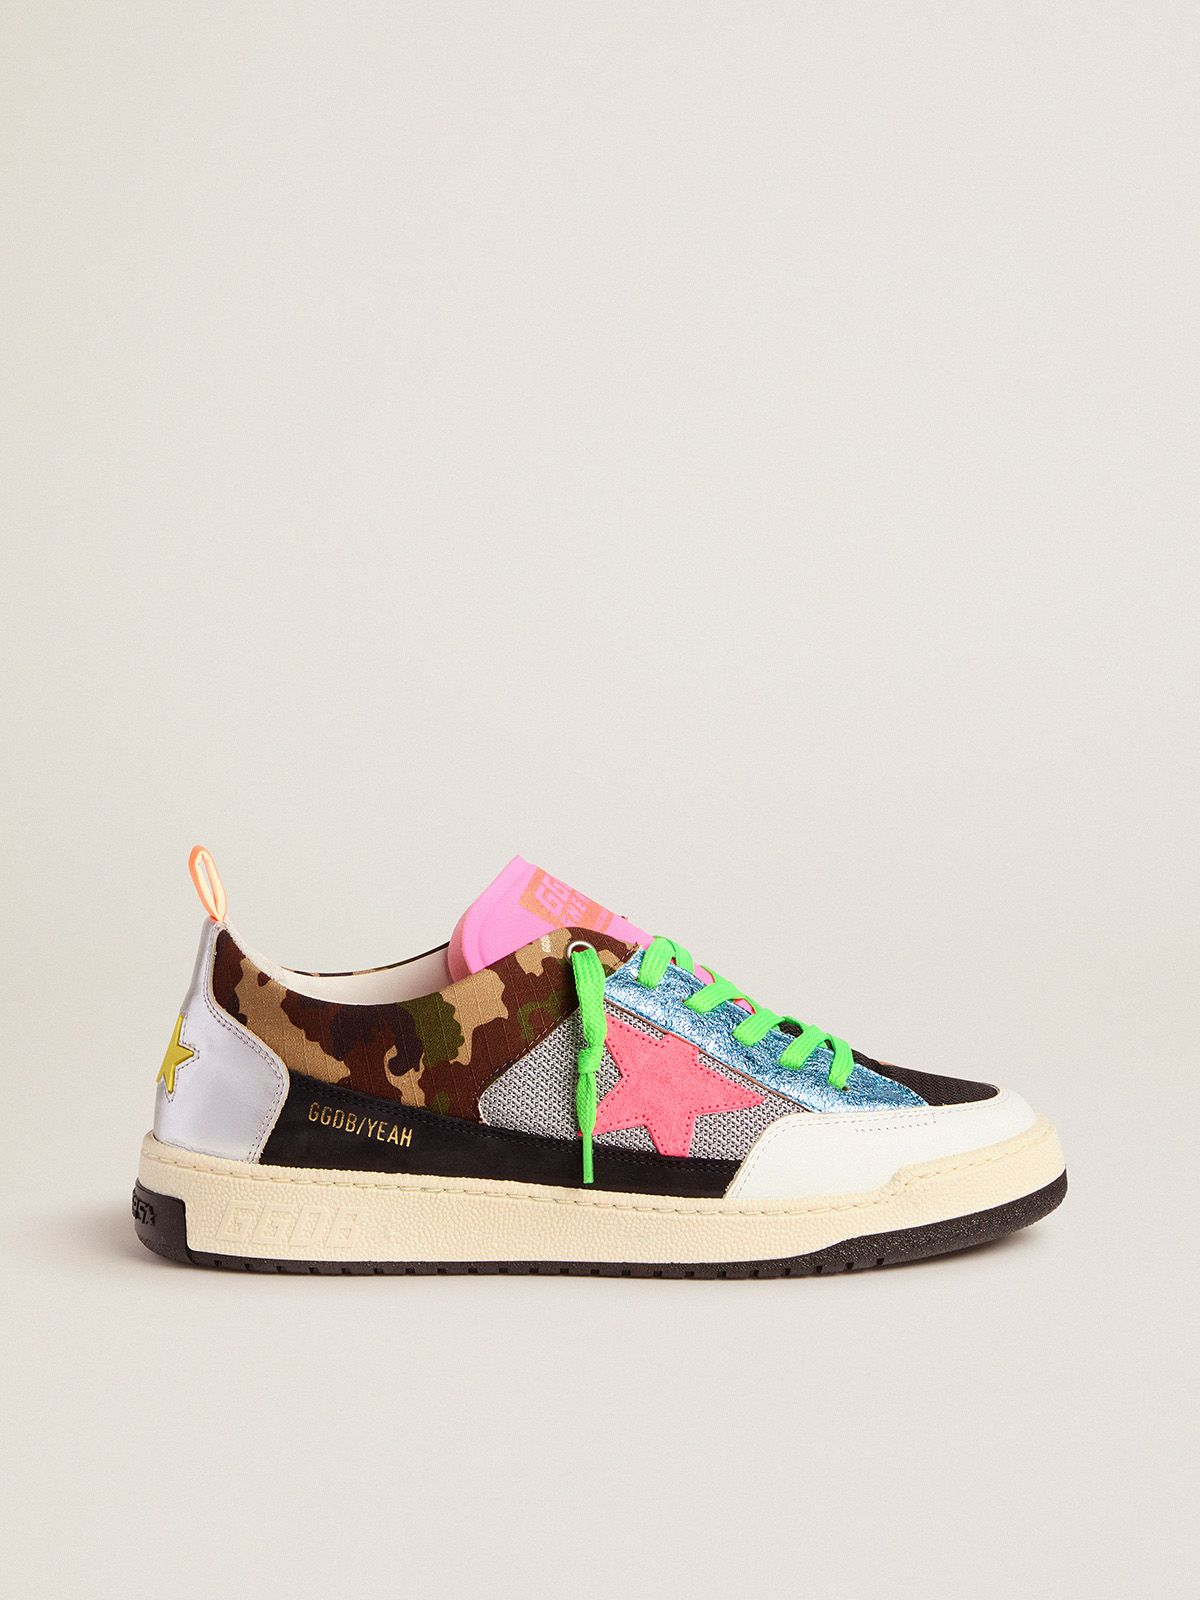 Men's camouflage Yeah sneakers with fuchsia star